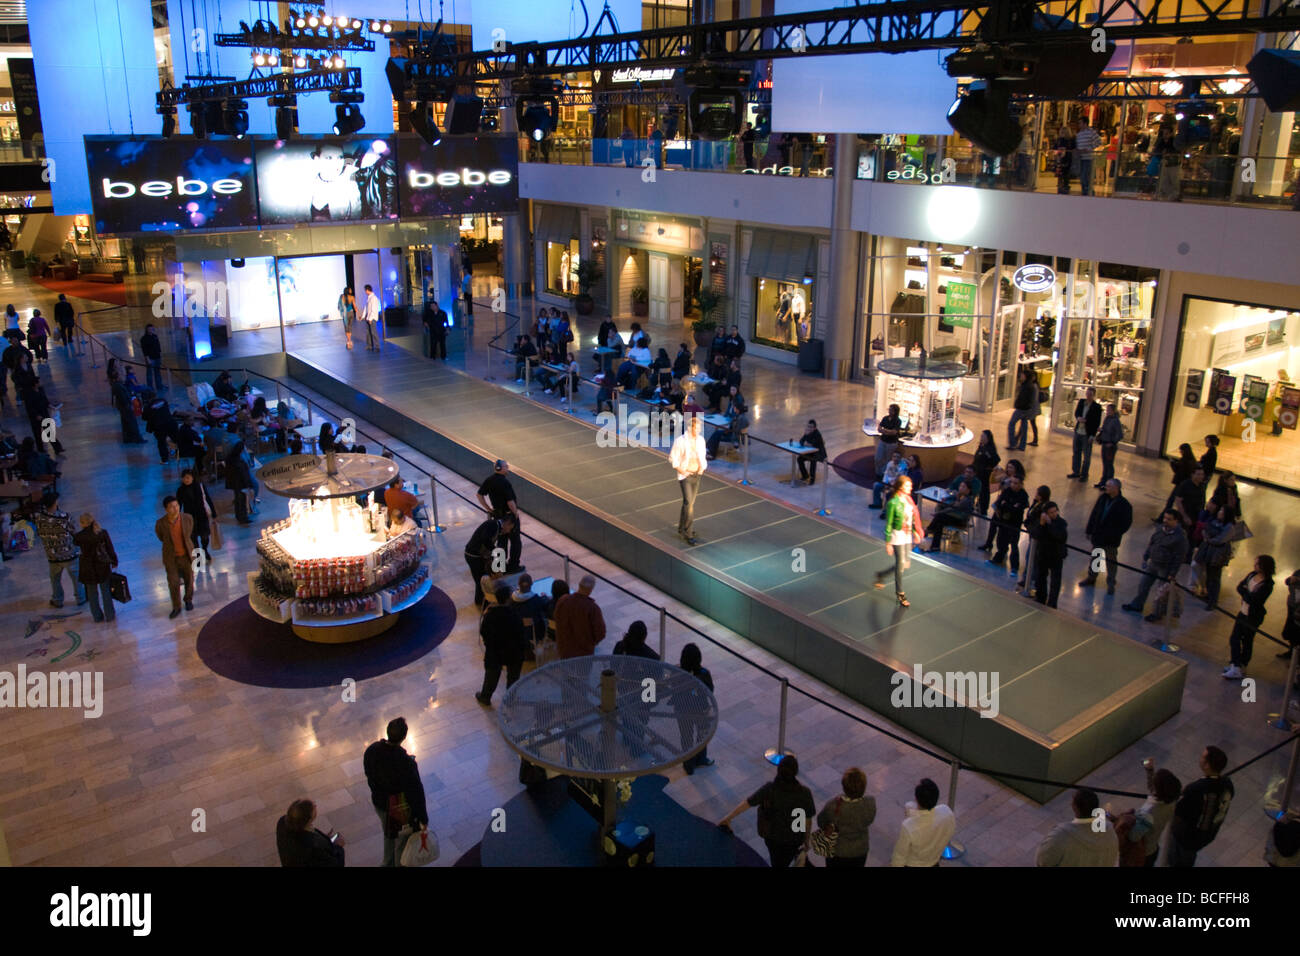 Where Is Fashion Show Mall On The Strip Vegas